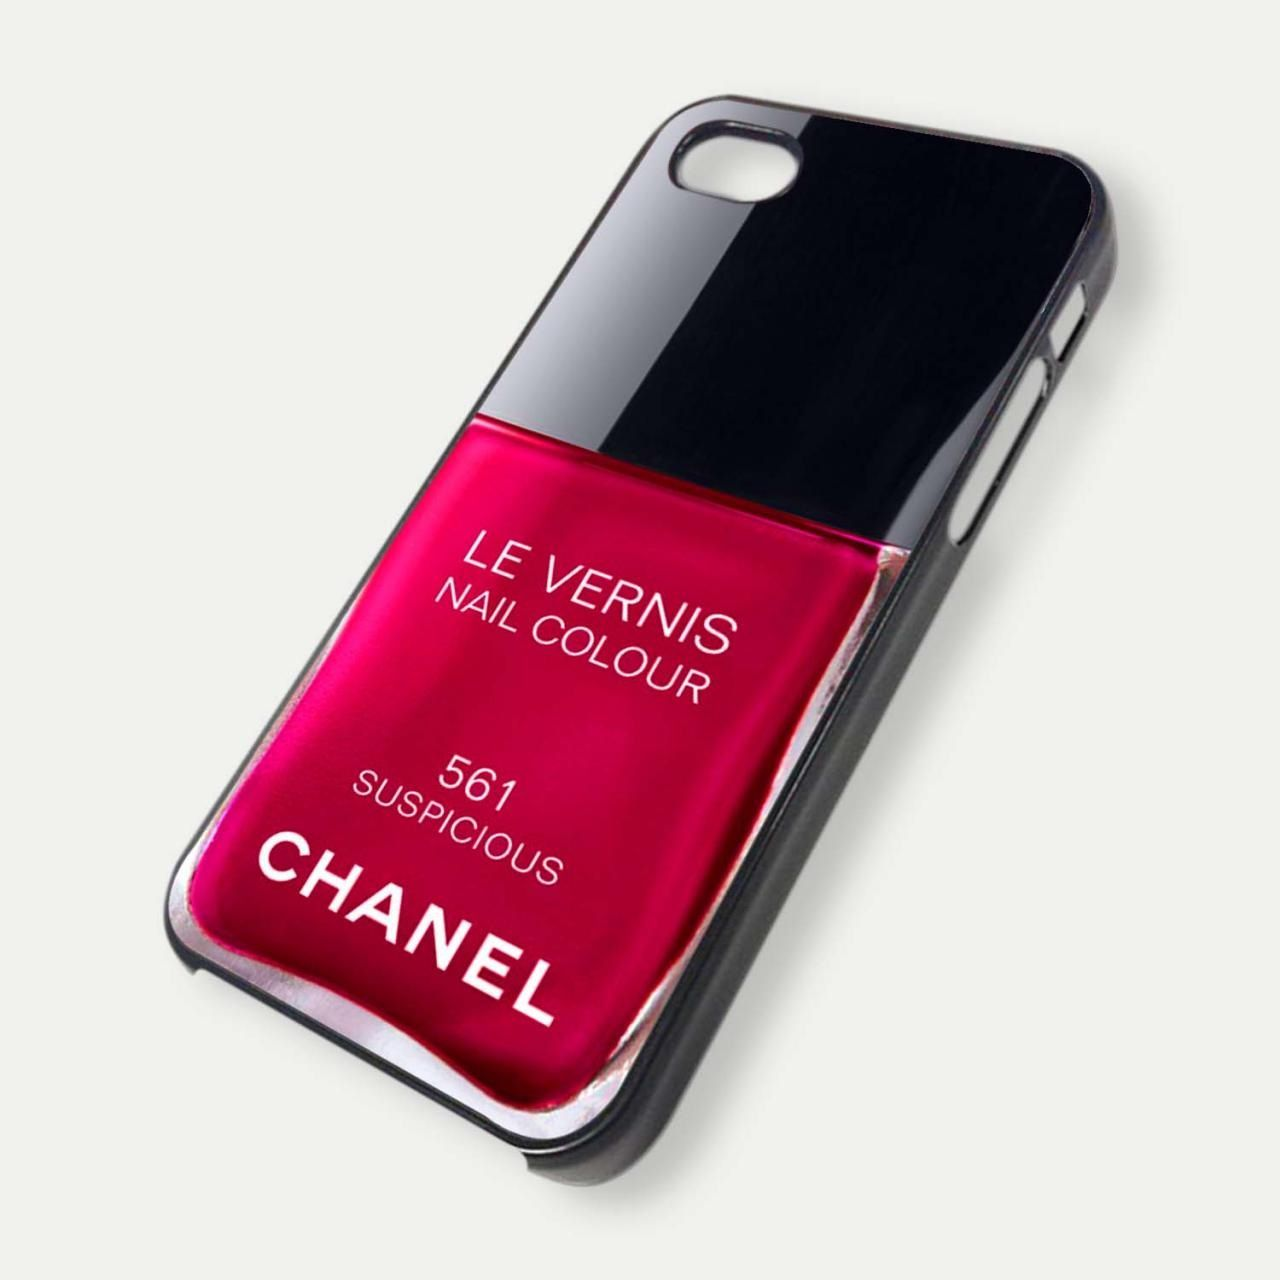 Chanel iPhone 5 Nail Polish Case {Suspicious}   Apple of my i ...